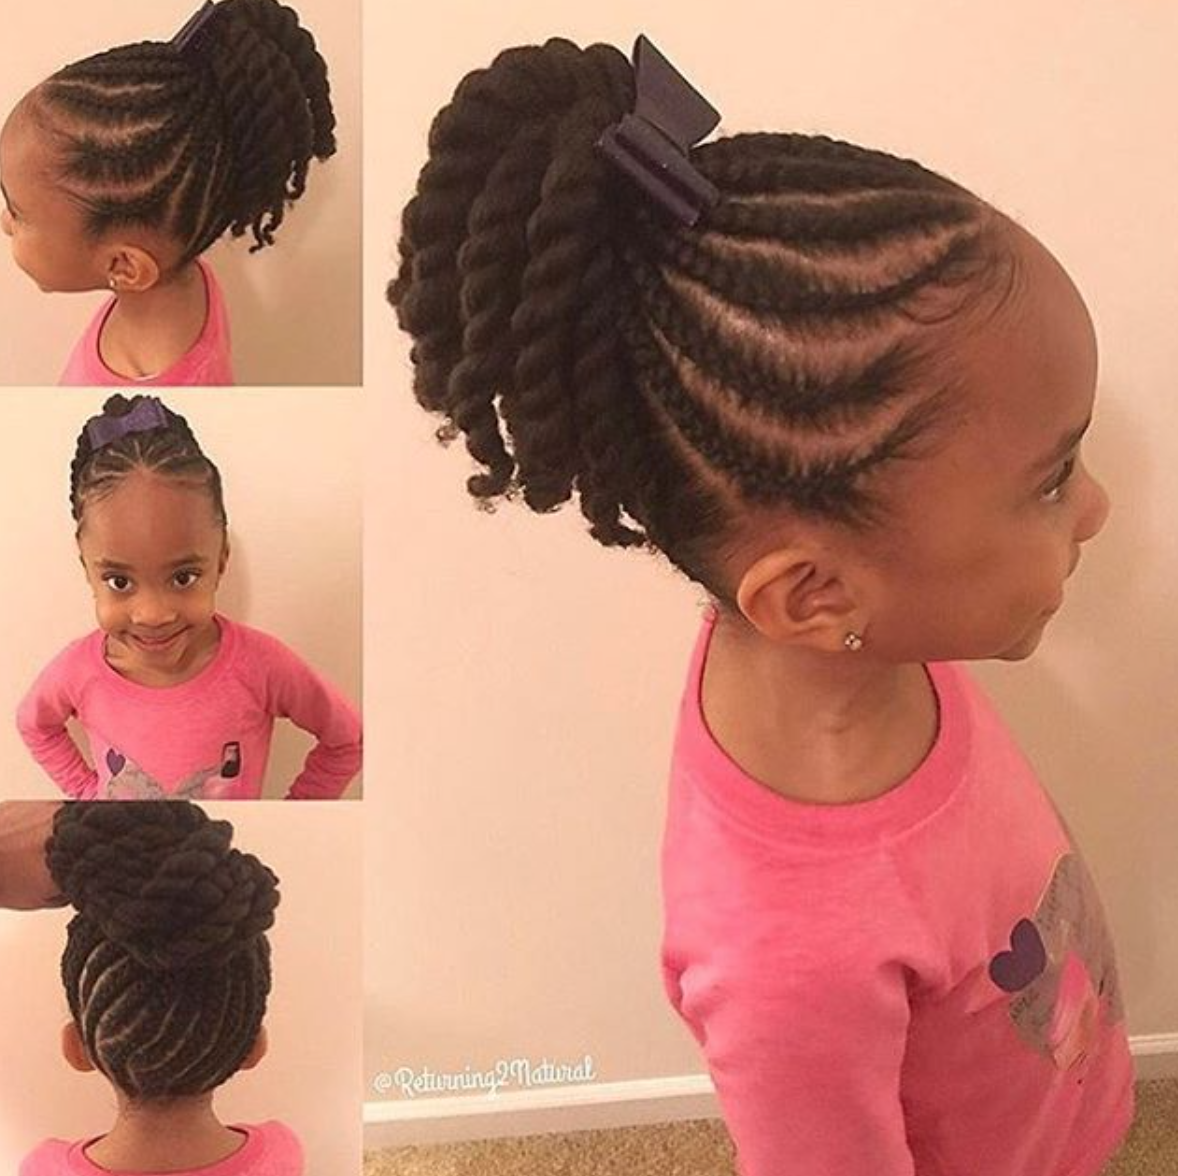 Pictures Of Hairstyles So Adorable Via Returning2Natural  Httpsblackhairinformation